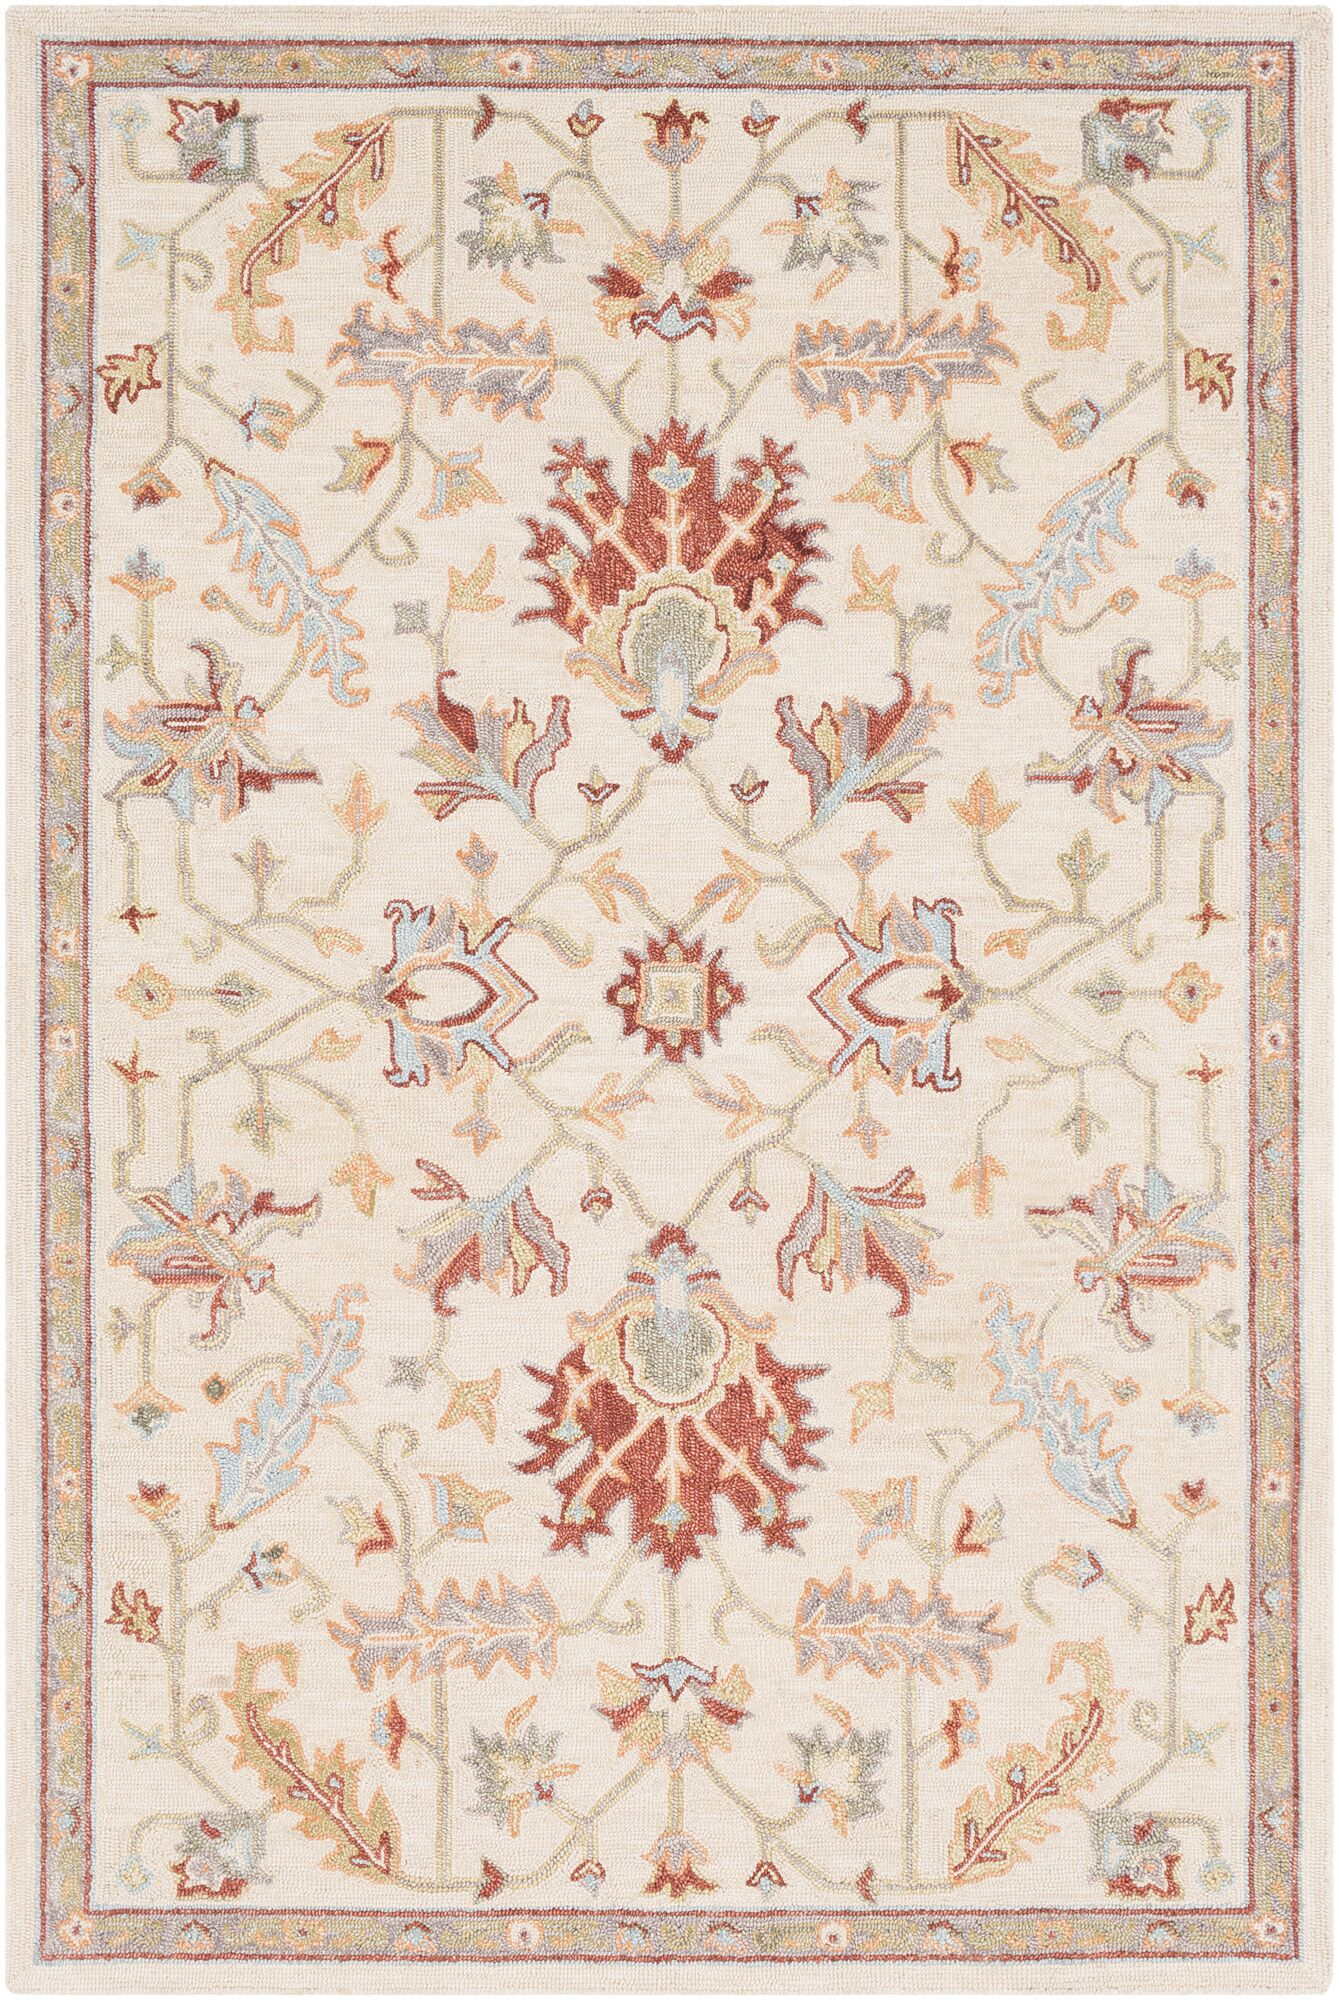 Rimrock Traditional Floral Hand Hooked Wool Khaki Area Rug Rug Size: Rectangle 5' x 7'6